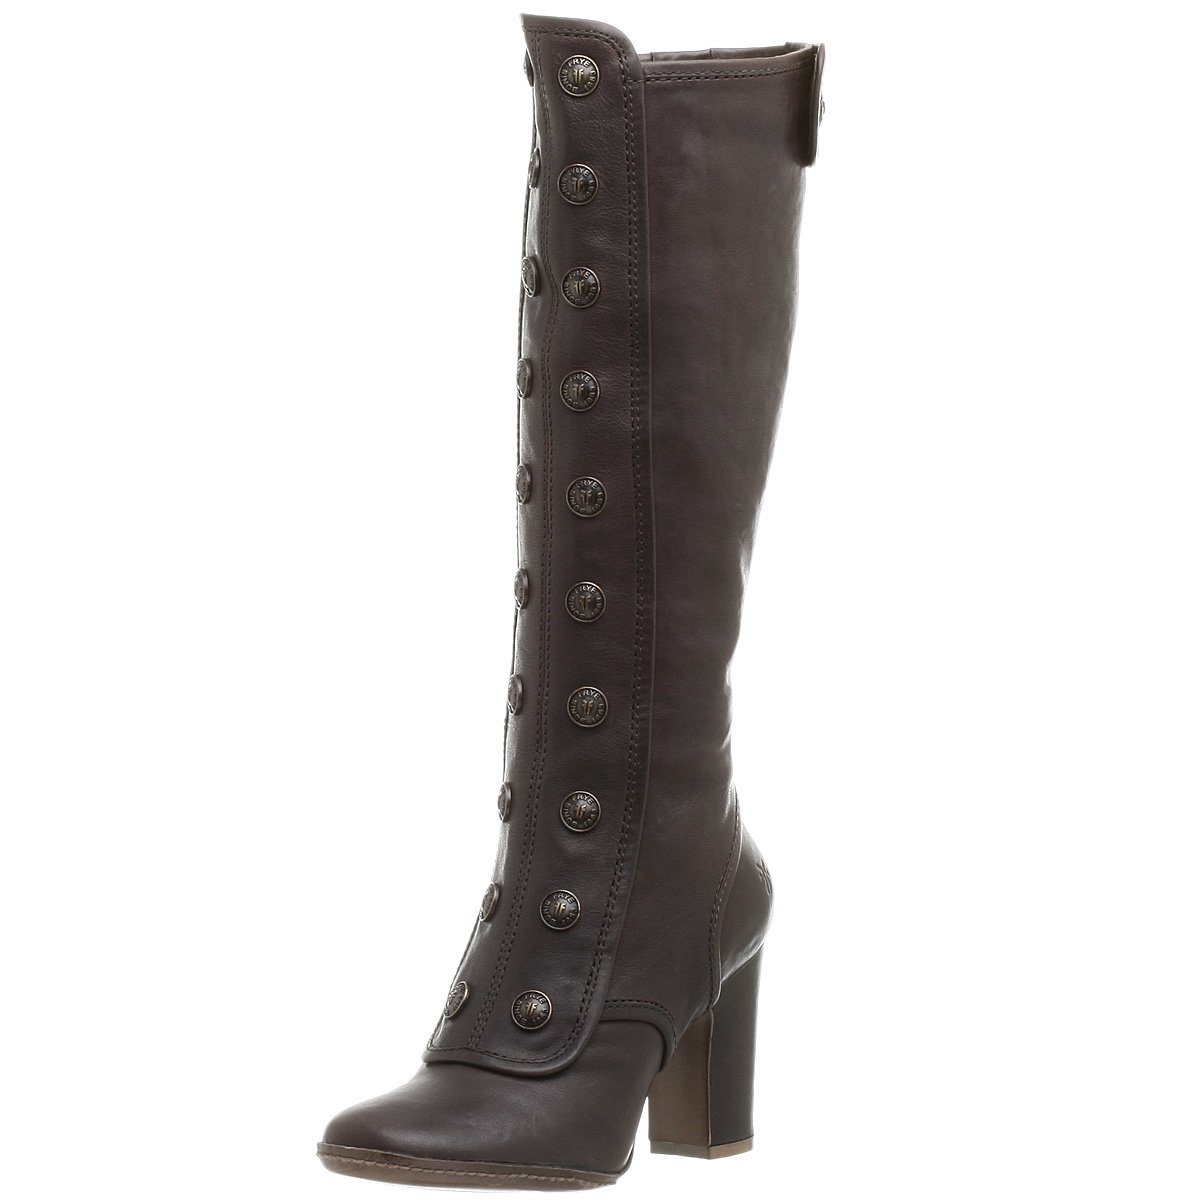 FRYE Adrienne Button Tall Boot - Free Overnight Shipping & Return Shipping: Endless.com